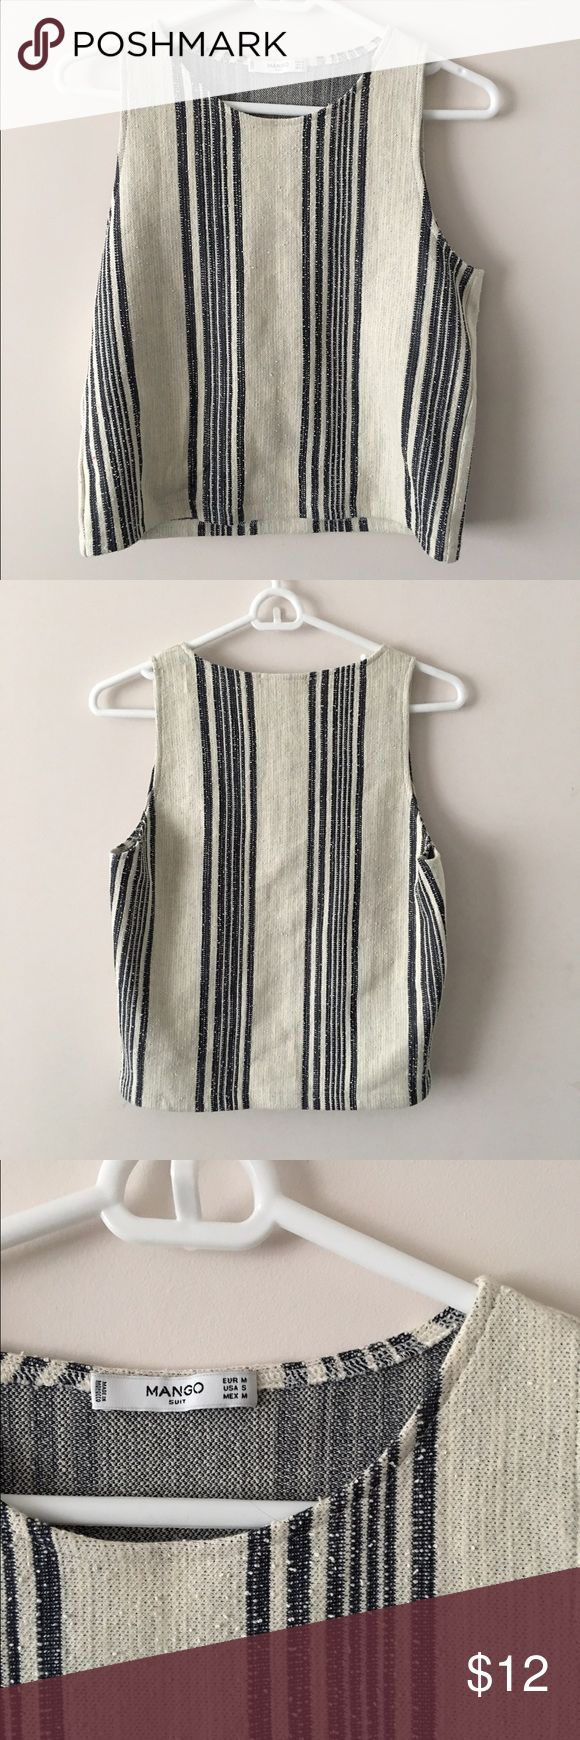 Mango Tweed Striped Top Mango tweed sleeveless top with white and blue pin stripes. Bought in a Mango store in Milan, Italy and never worn. Absolutely perfect condition and great for the warmer months! Mango Tops Tank Tops